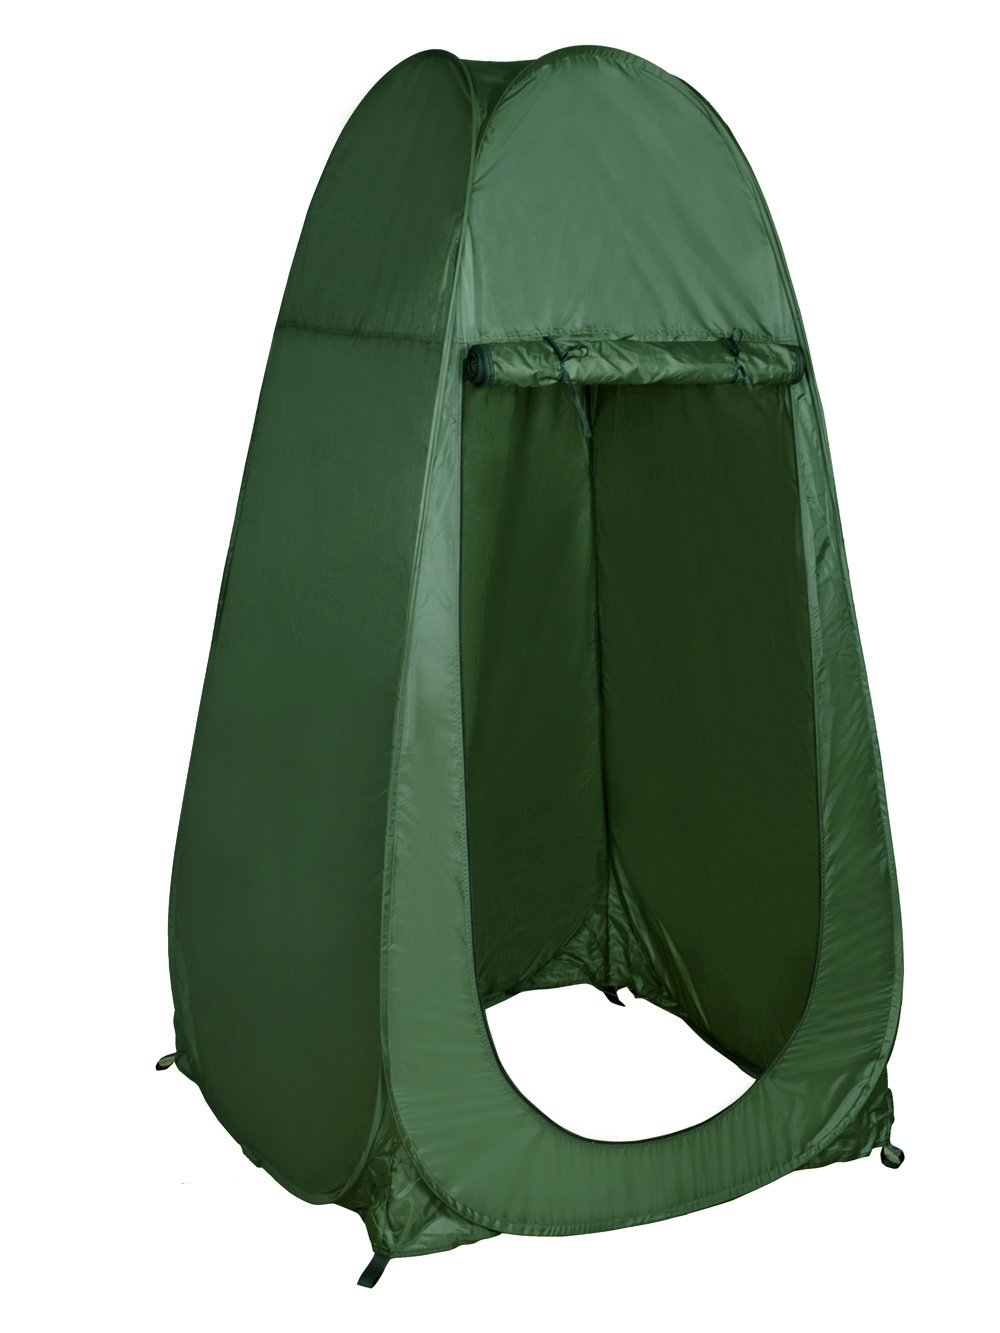 Top 10 Best C&ing Privacy Shower Tents Reviews 2016-2017 on Flipboard  sc 1 st  Flipboard & Top 10 Best Camping Privacy Shower Tents Reviews 2016-2017 on ...